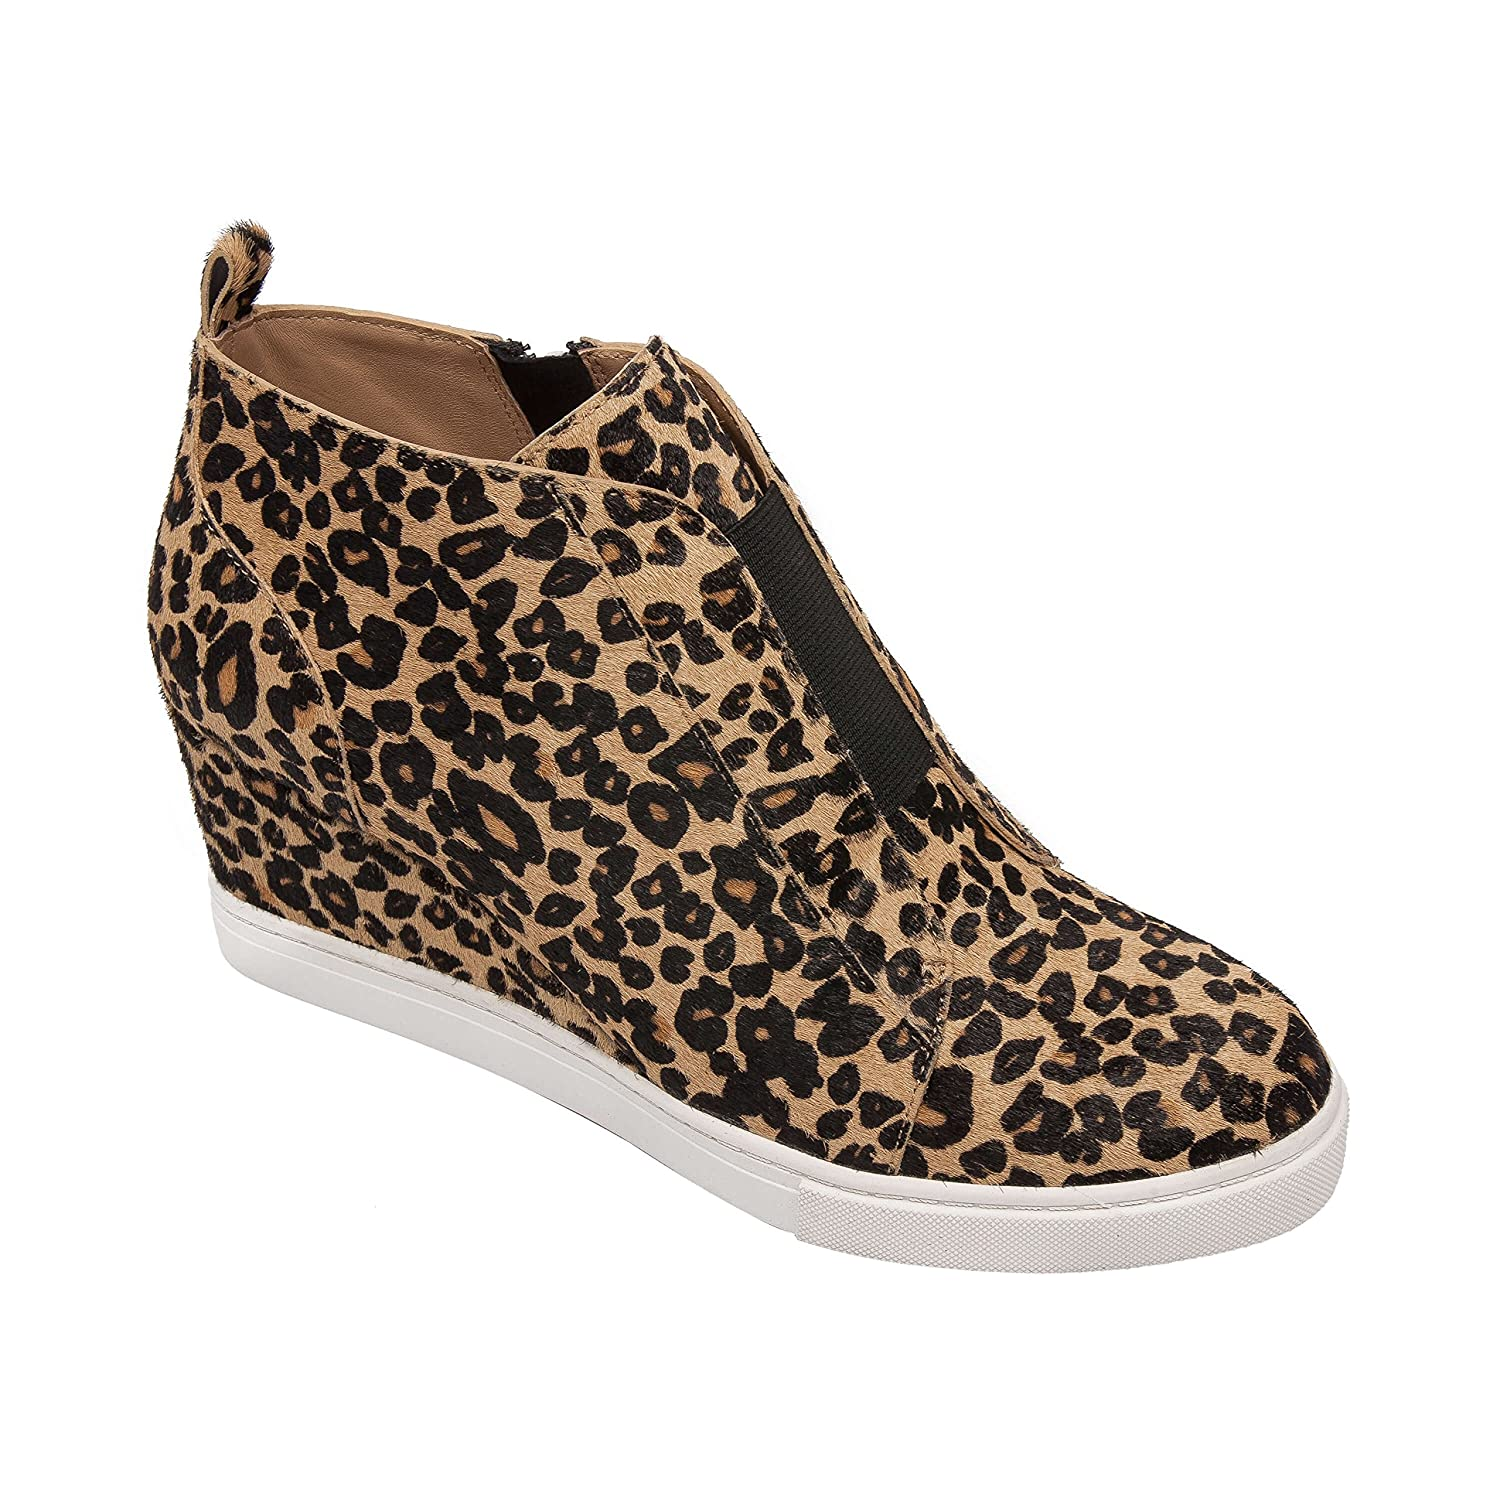 Felicia | Women's Platform Wedge Bootie Sneaker Leather Or Suede B07F6P25CL 13 M US|Sand/Black Leopard Print Hair Calf